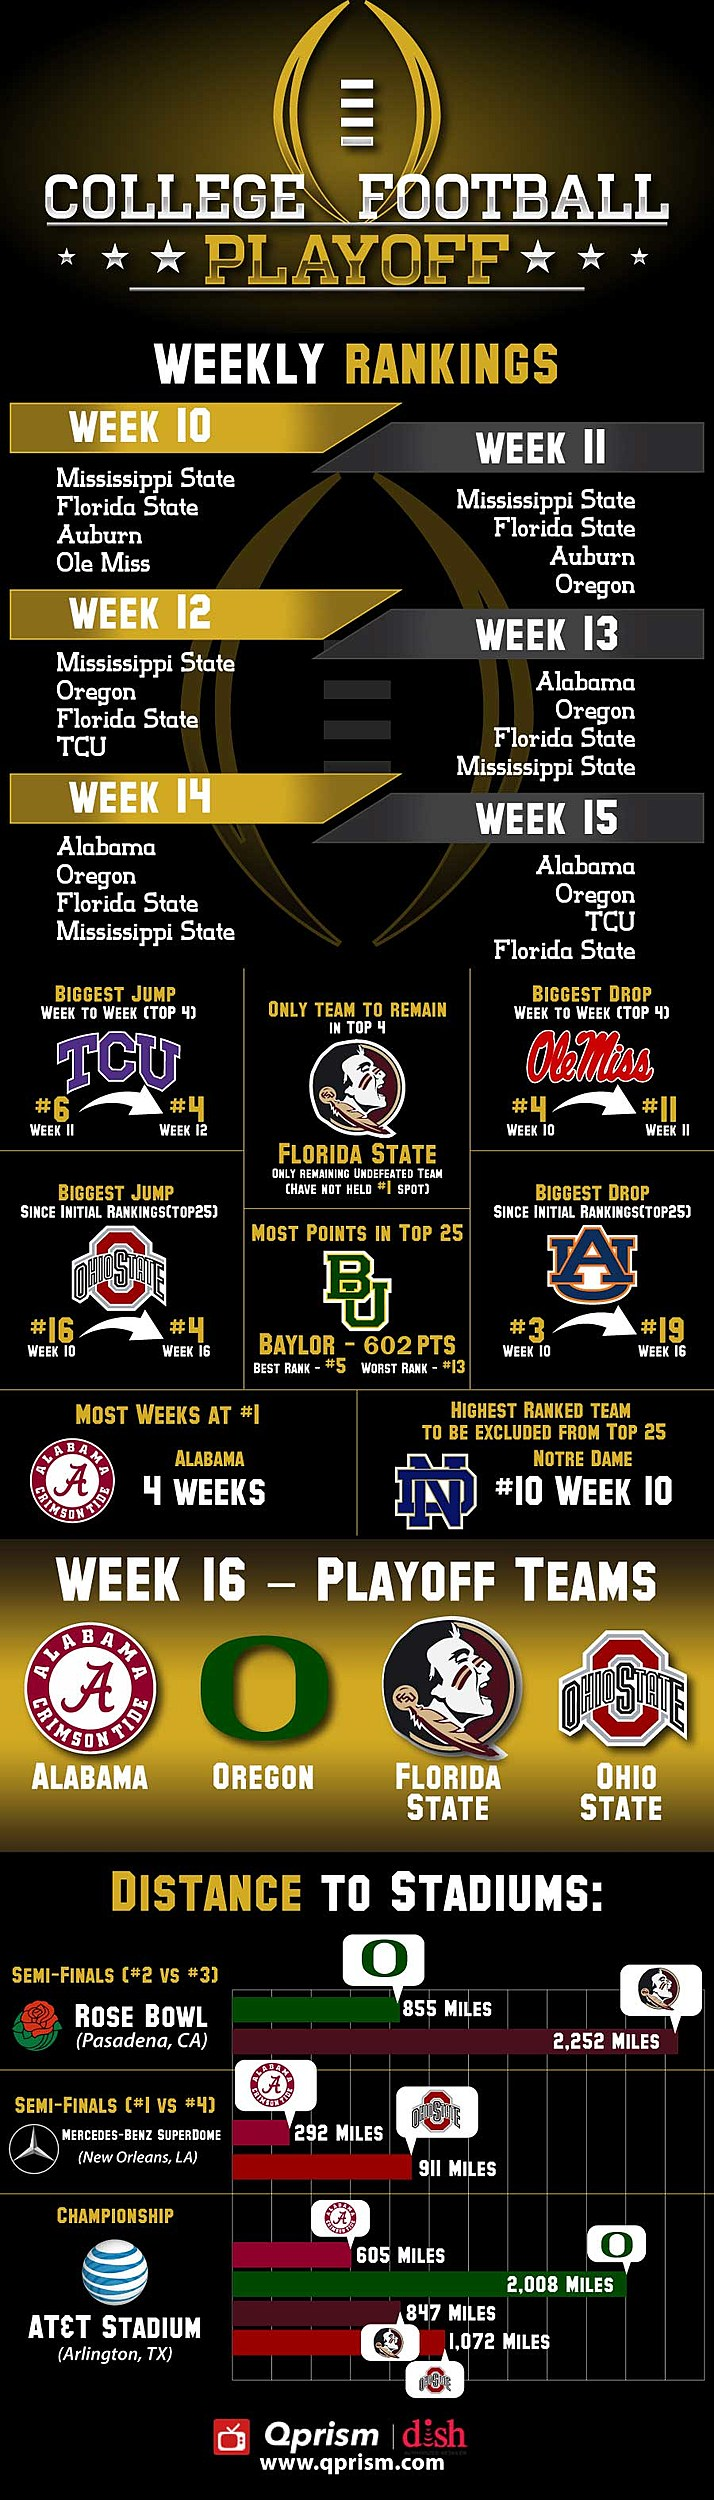 playoff ranking cbs sports network college football